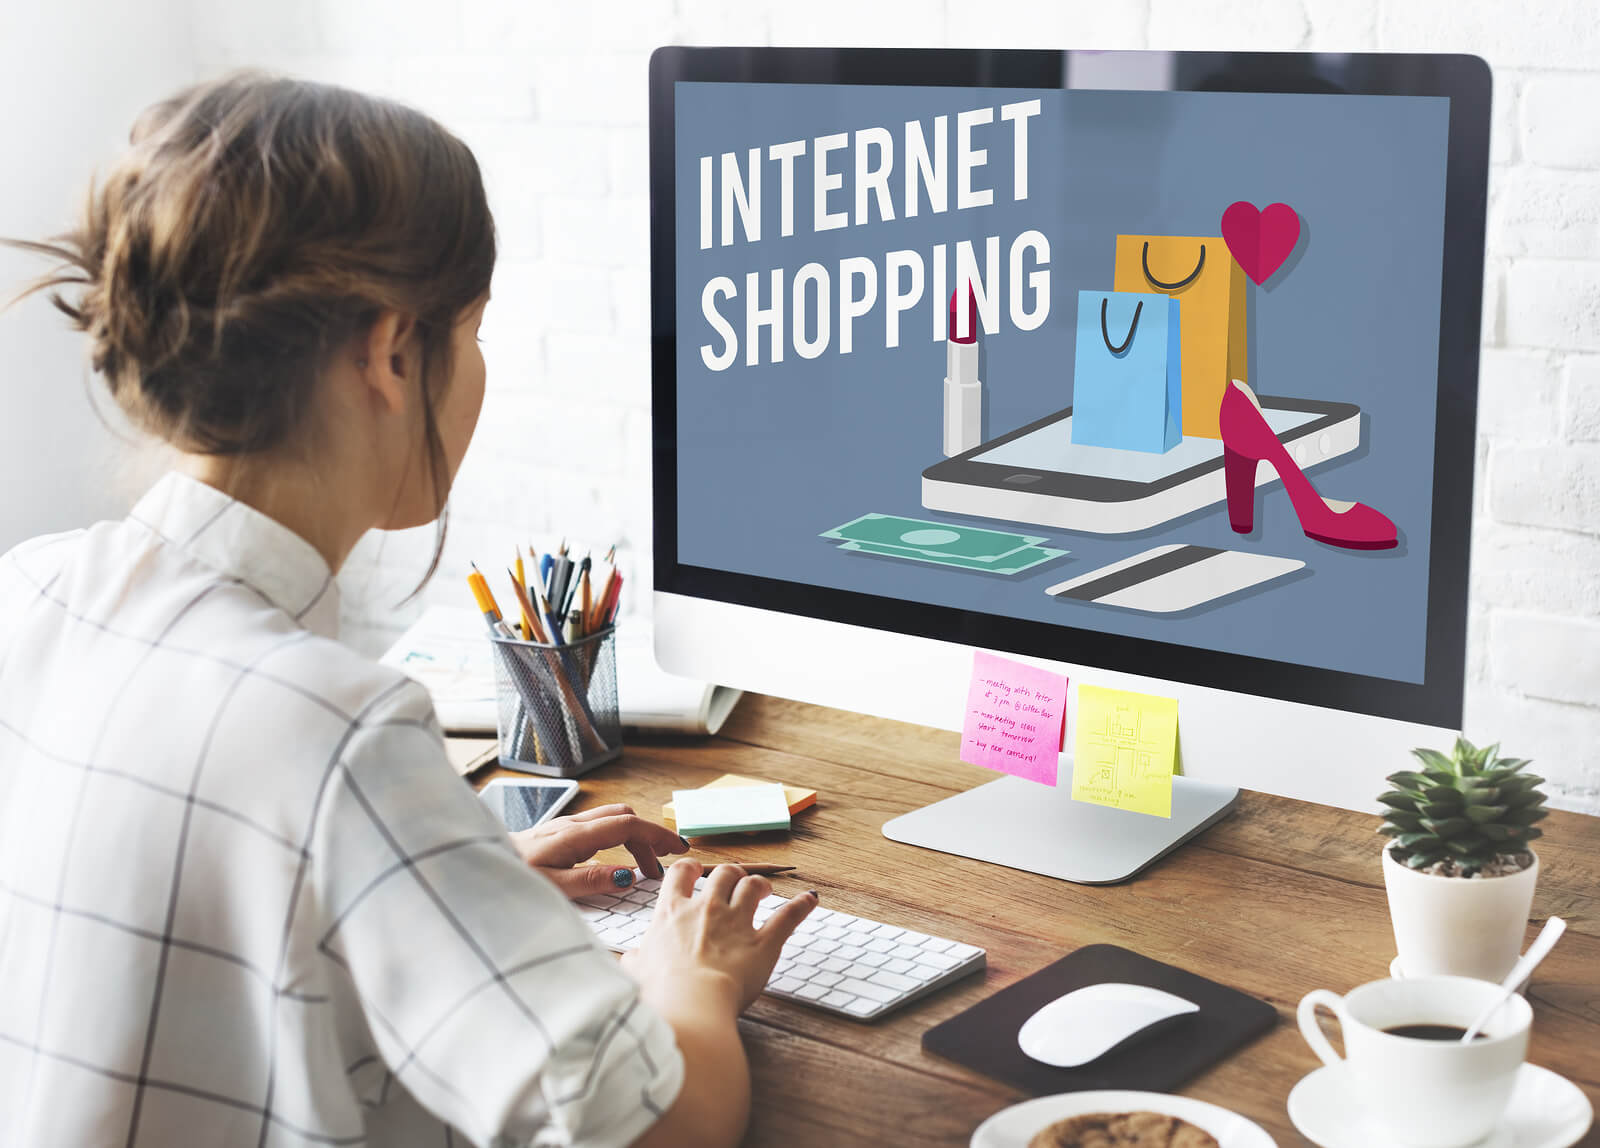 3 Easy Ways to Improve Online Shopping Experience for Customers